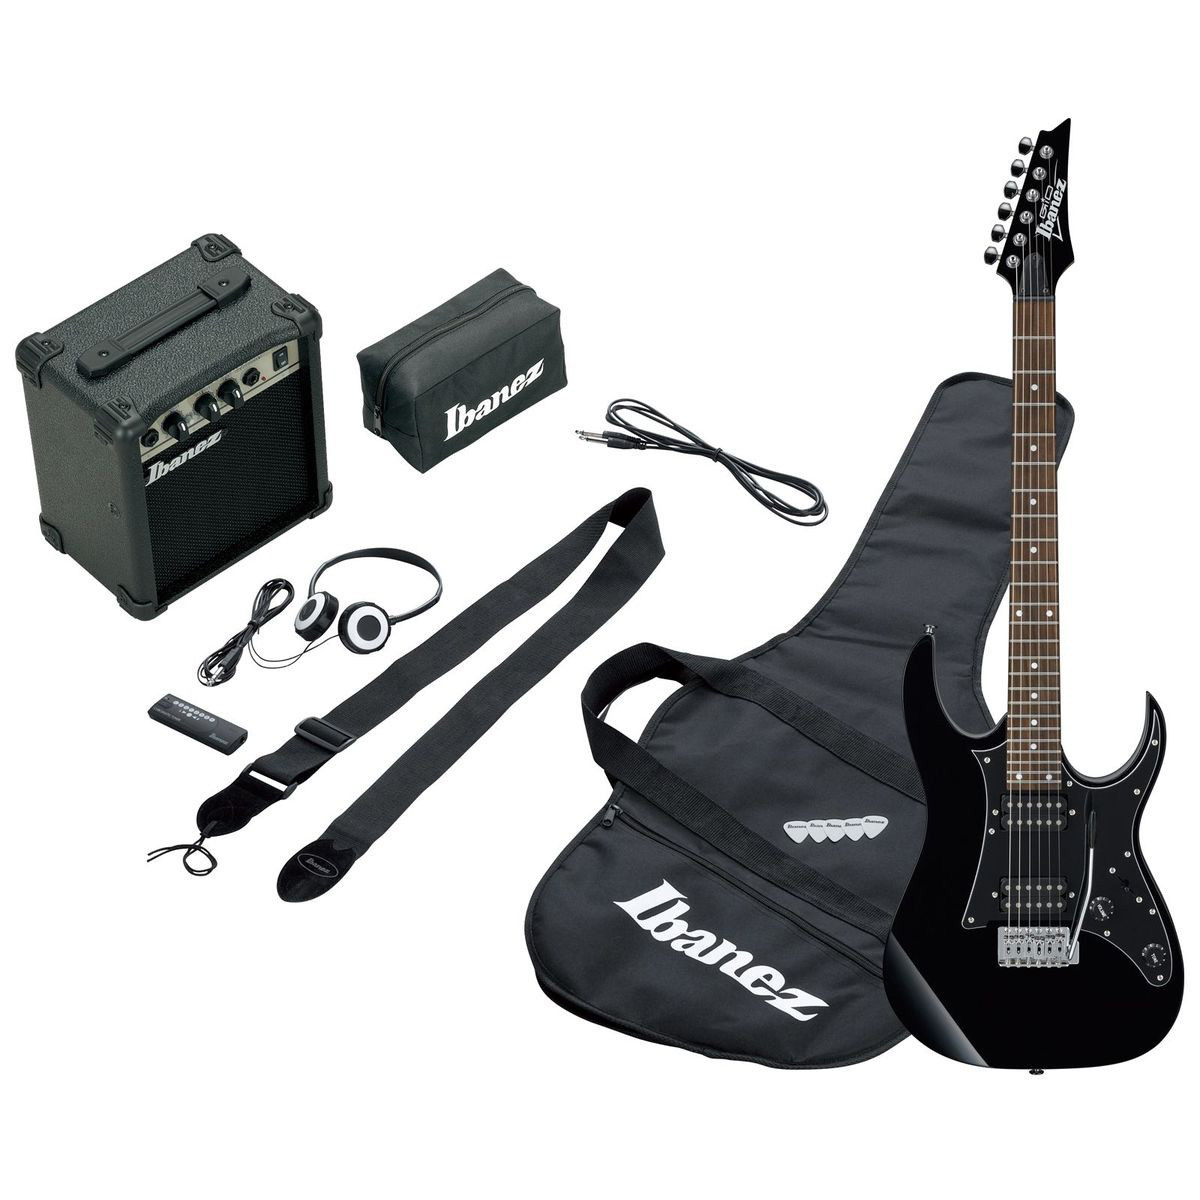 Disc Ibanez Ijrg200 Jumpstart Electric Guitar Pack Black At Gear4music